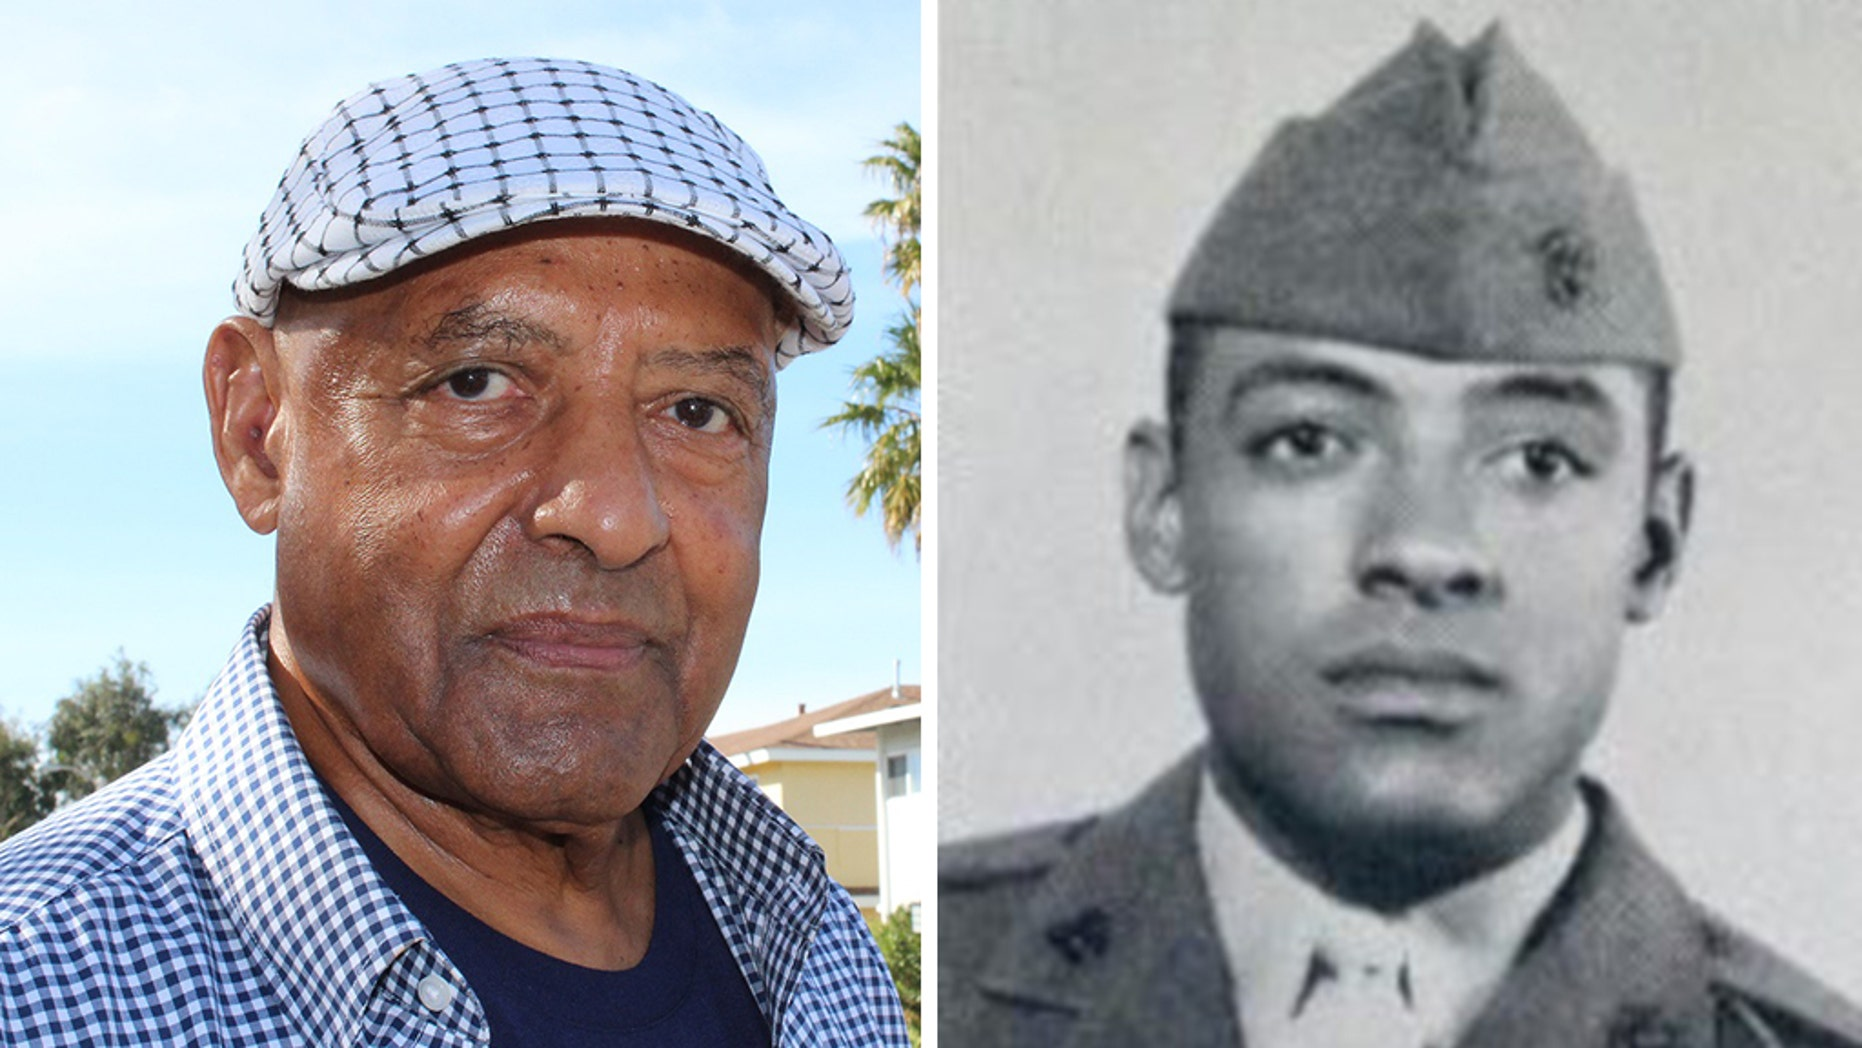 On Oct. 17, President Trump will award the Medal of Honor to Sgt. Maj. John L. Canley.